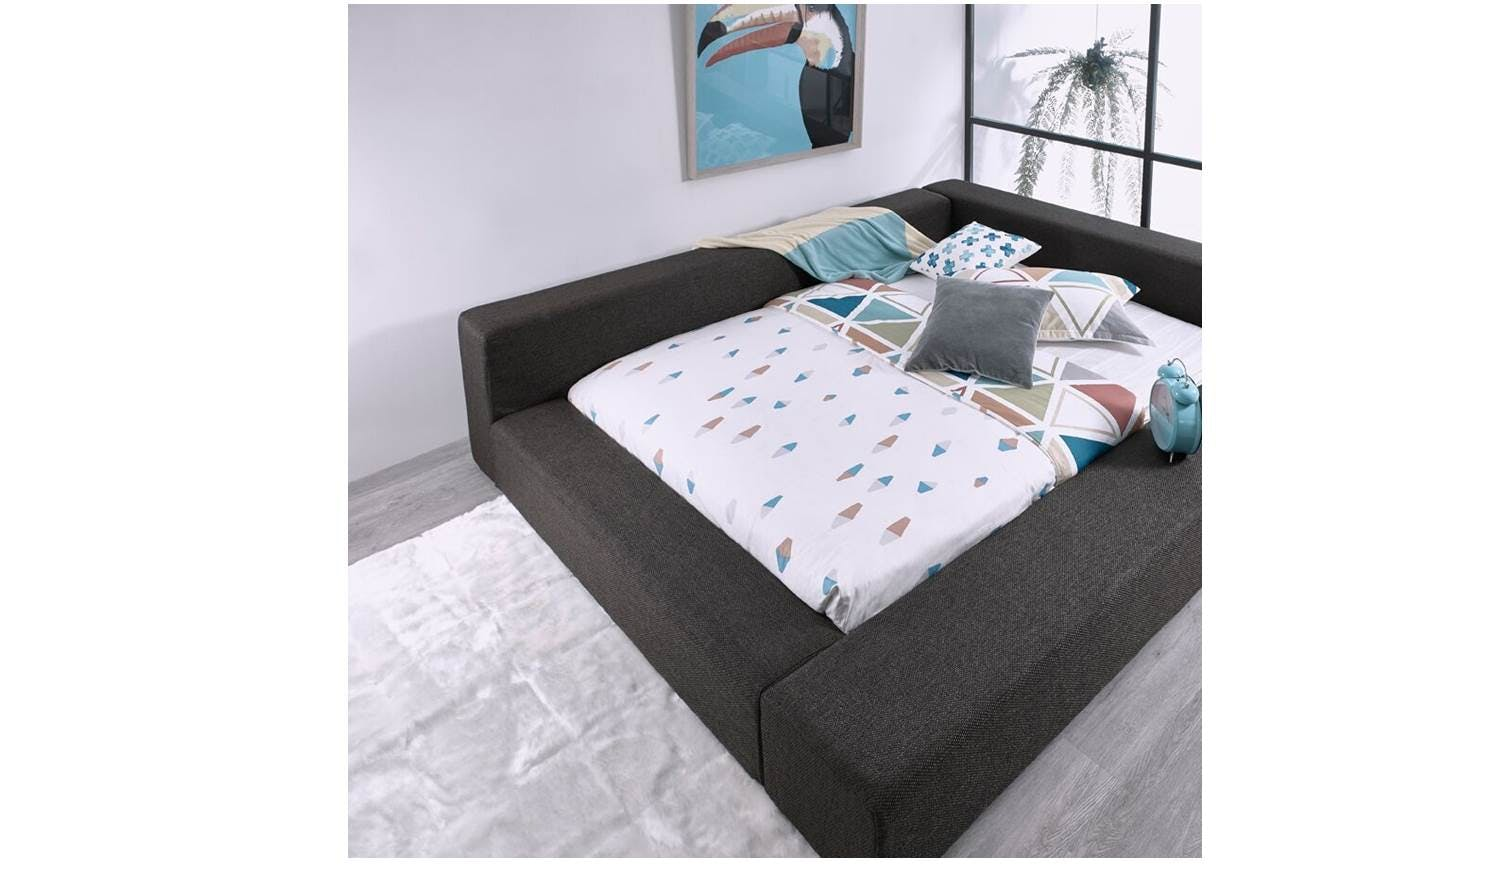 Derry Warwick Fabric Bed Frame - Queen Size | Harvey Norman Singapore